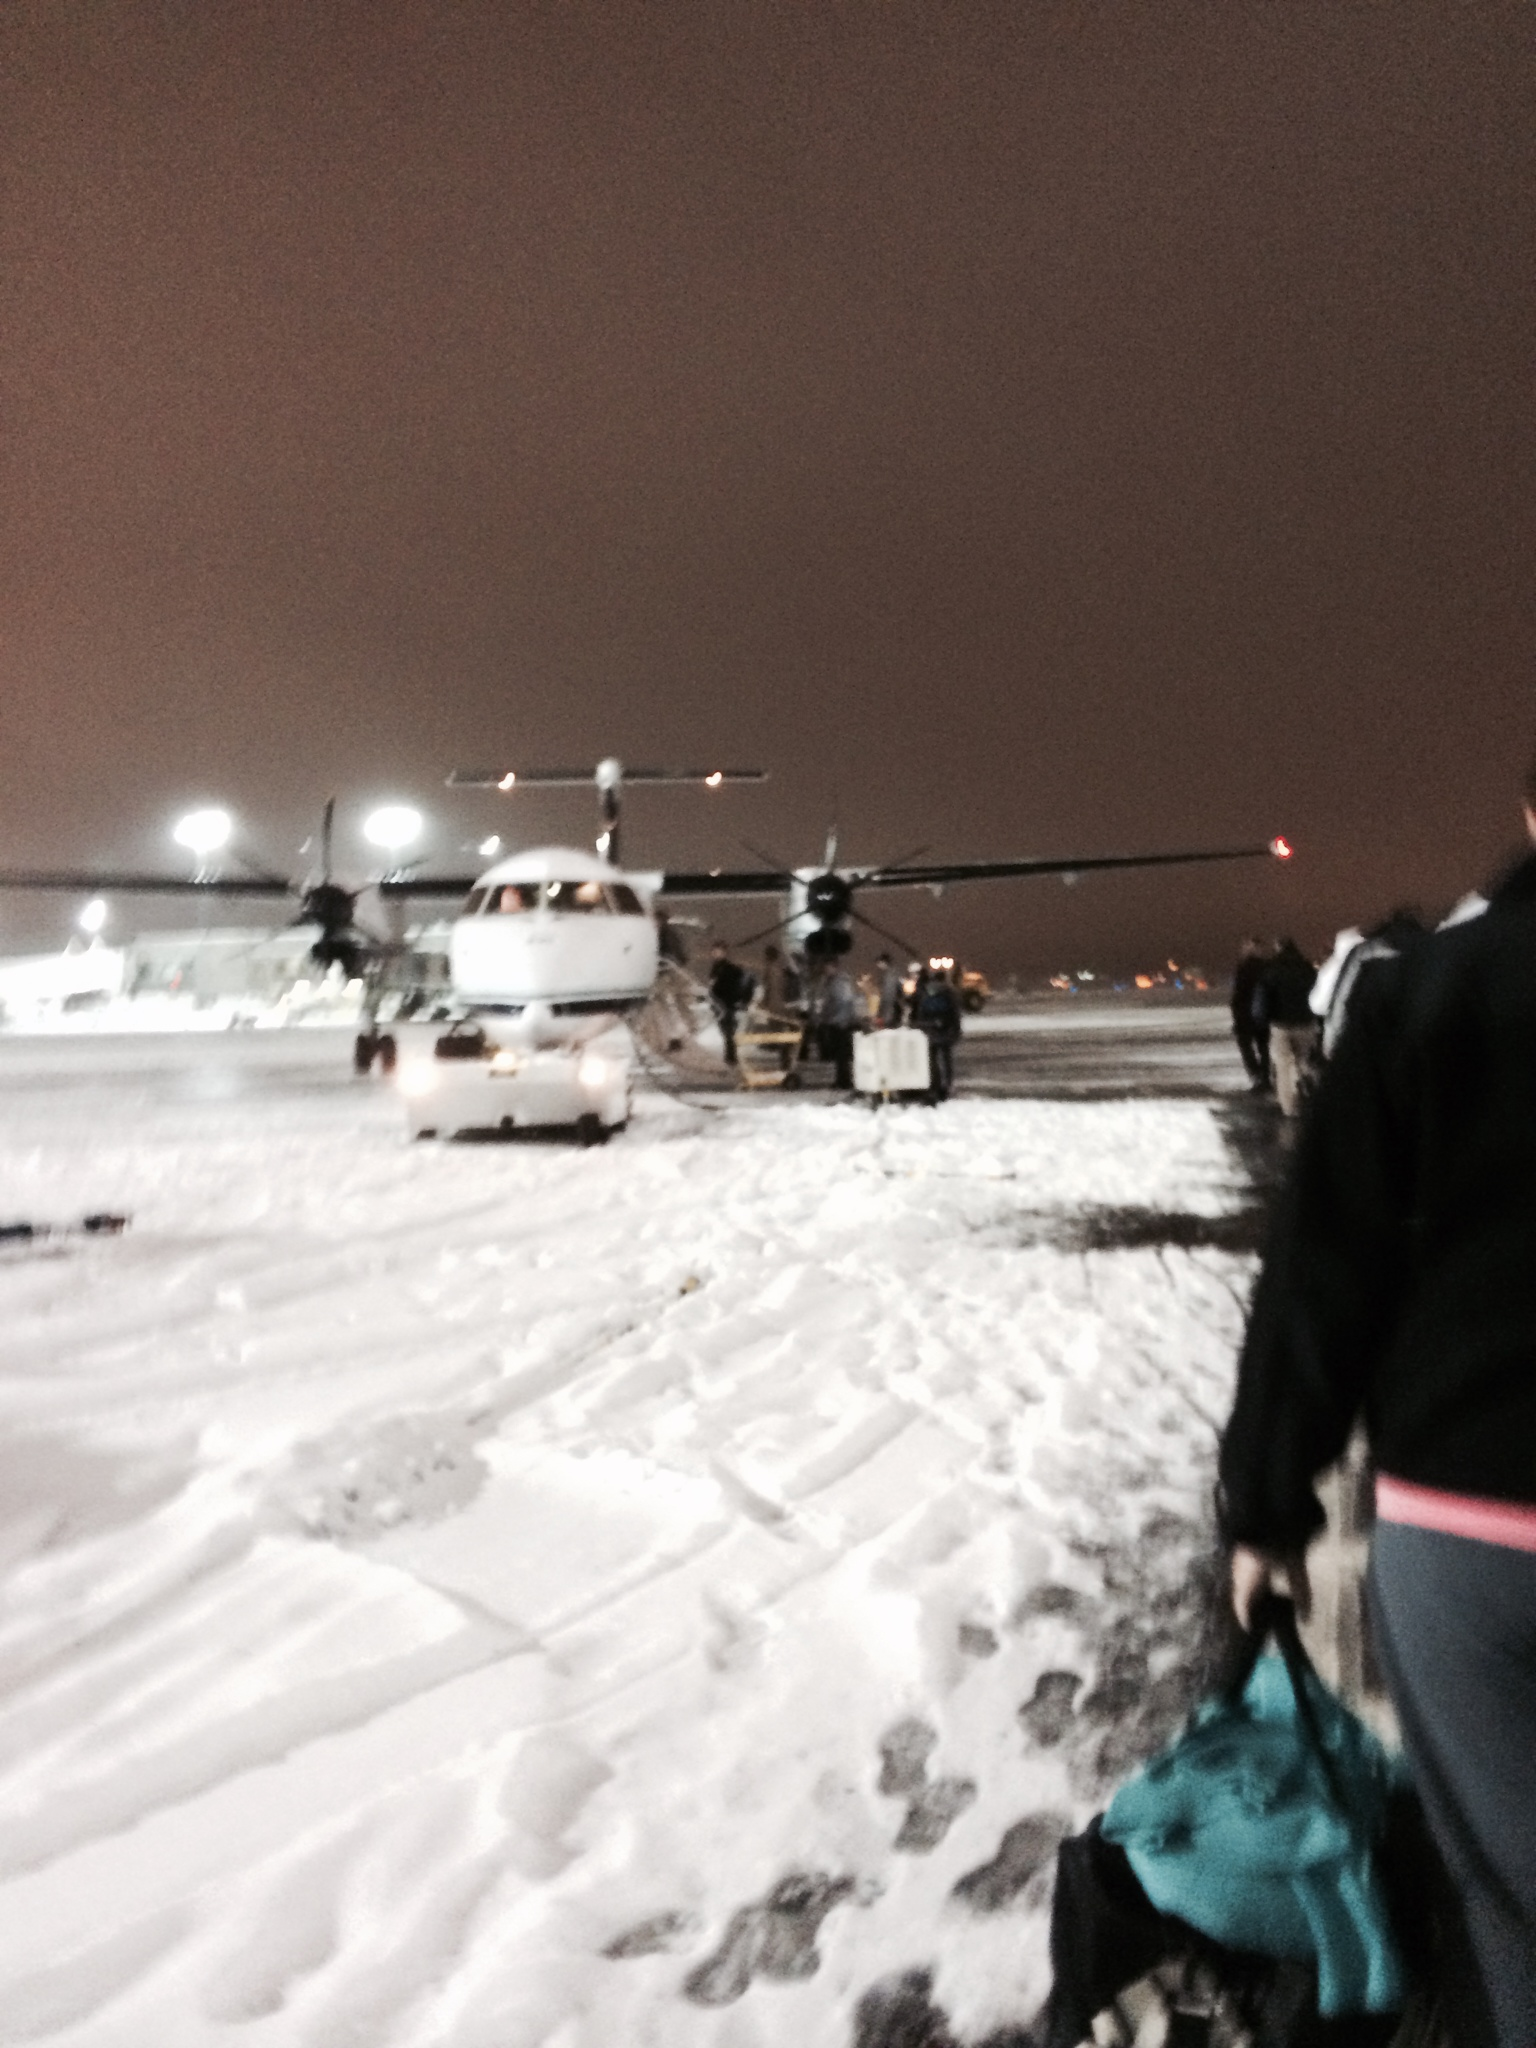 I snapped this photo as I boarded my plane in Spokane. I am still surprised we flew out on only a 30 minute delay.